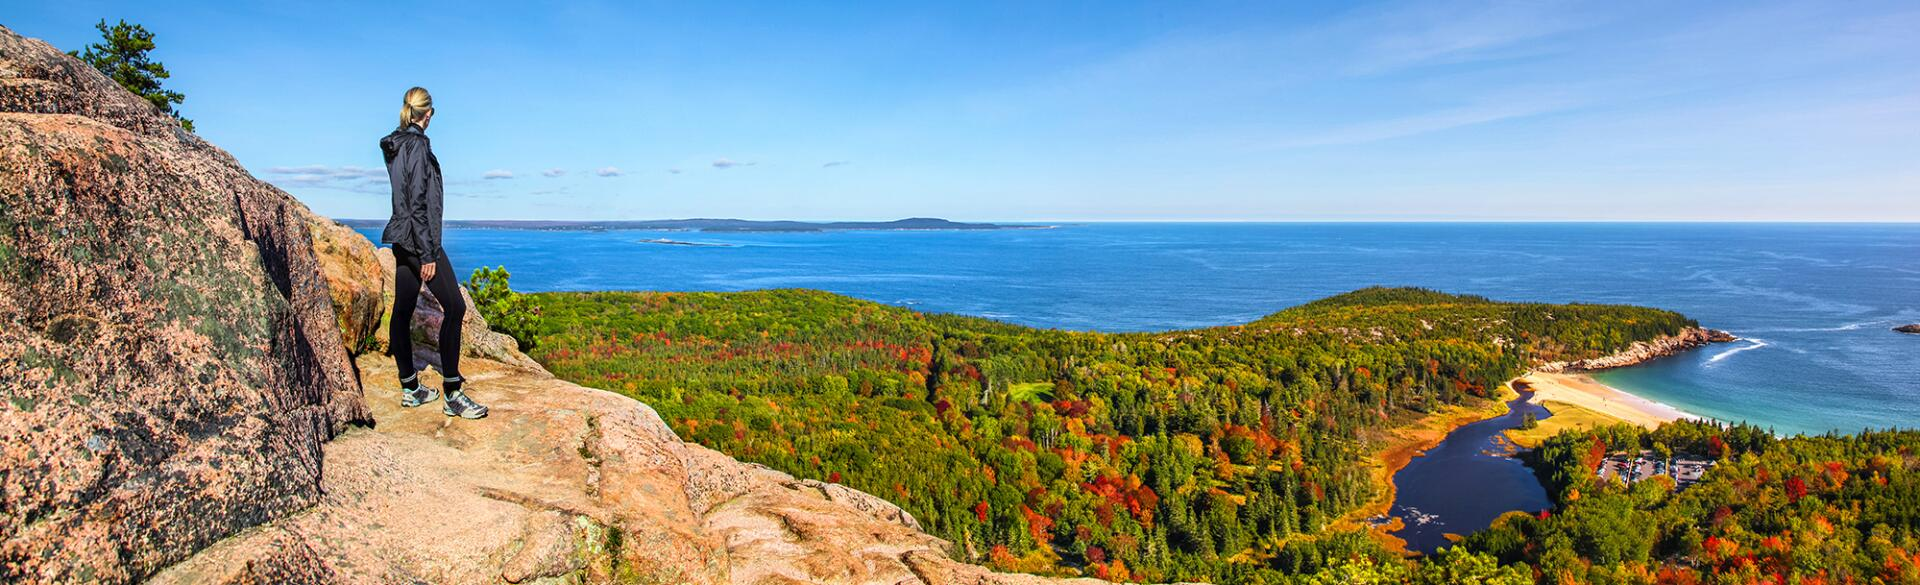 Hiker enjoying the panoramic view from the top of Beehive Trail in Acadia National Park